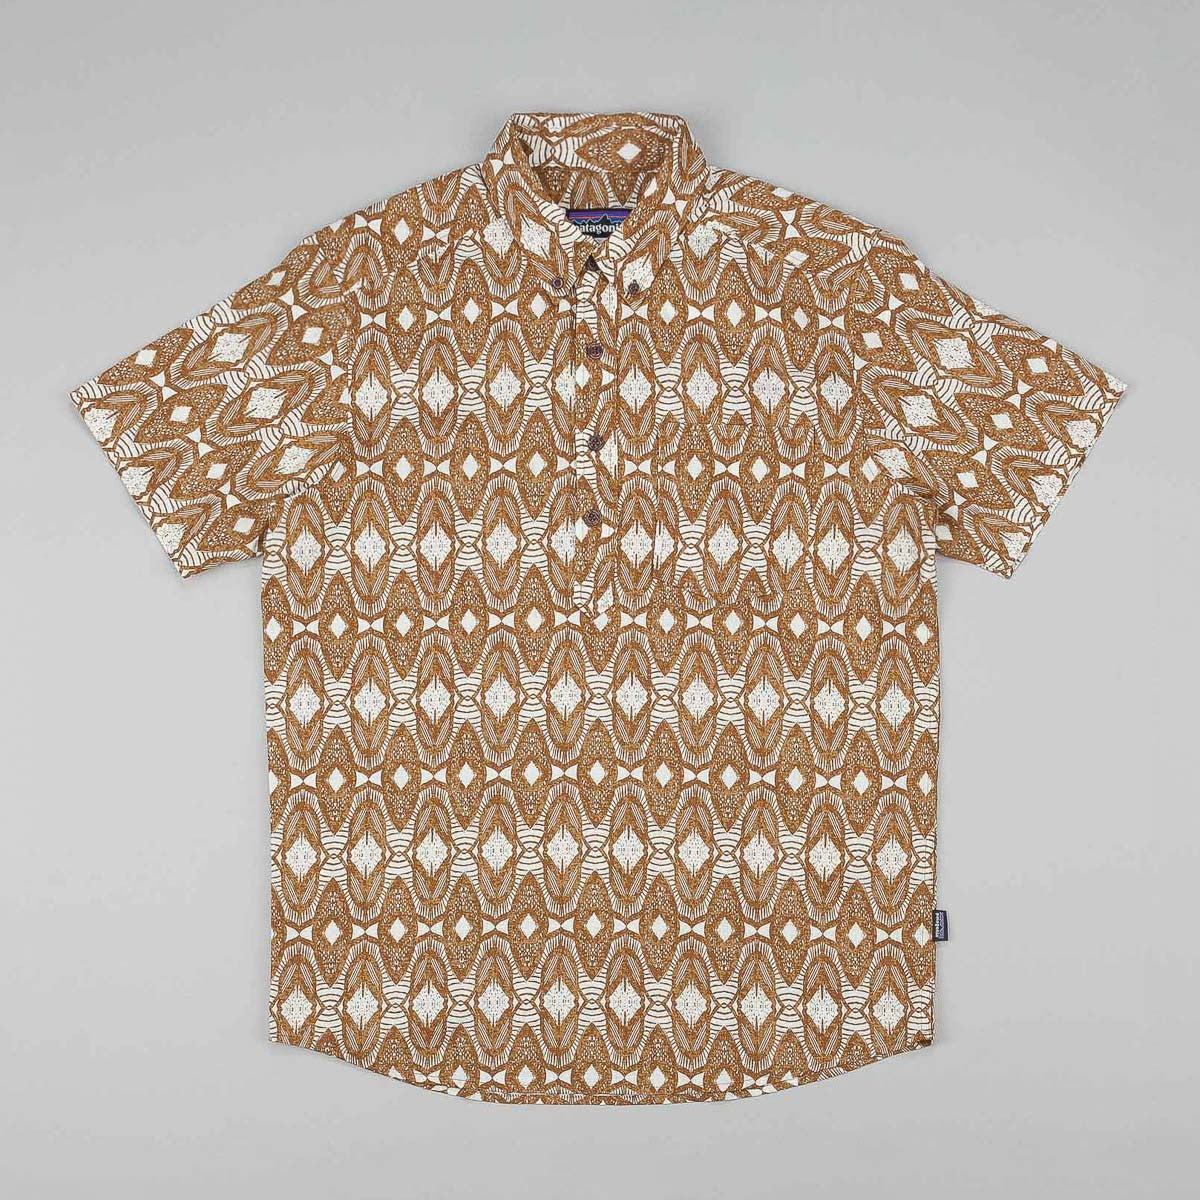 Patagonia Back Step Pullover Short Sleeve Shirt - Seeds: Bear Brown